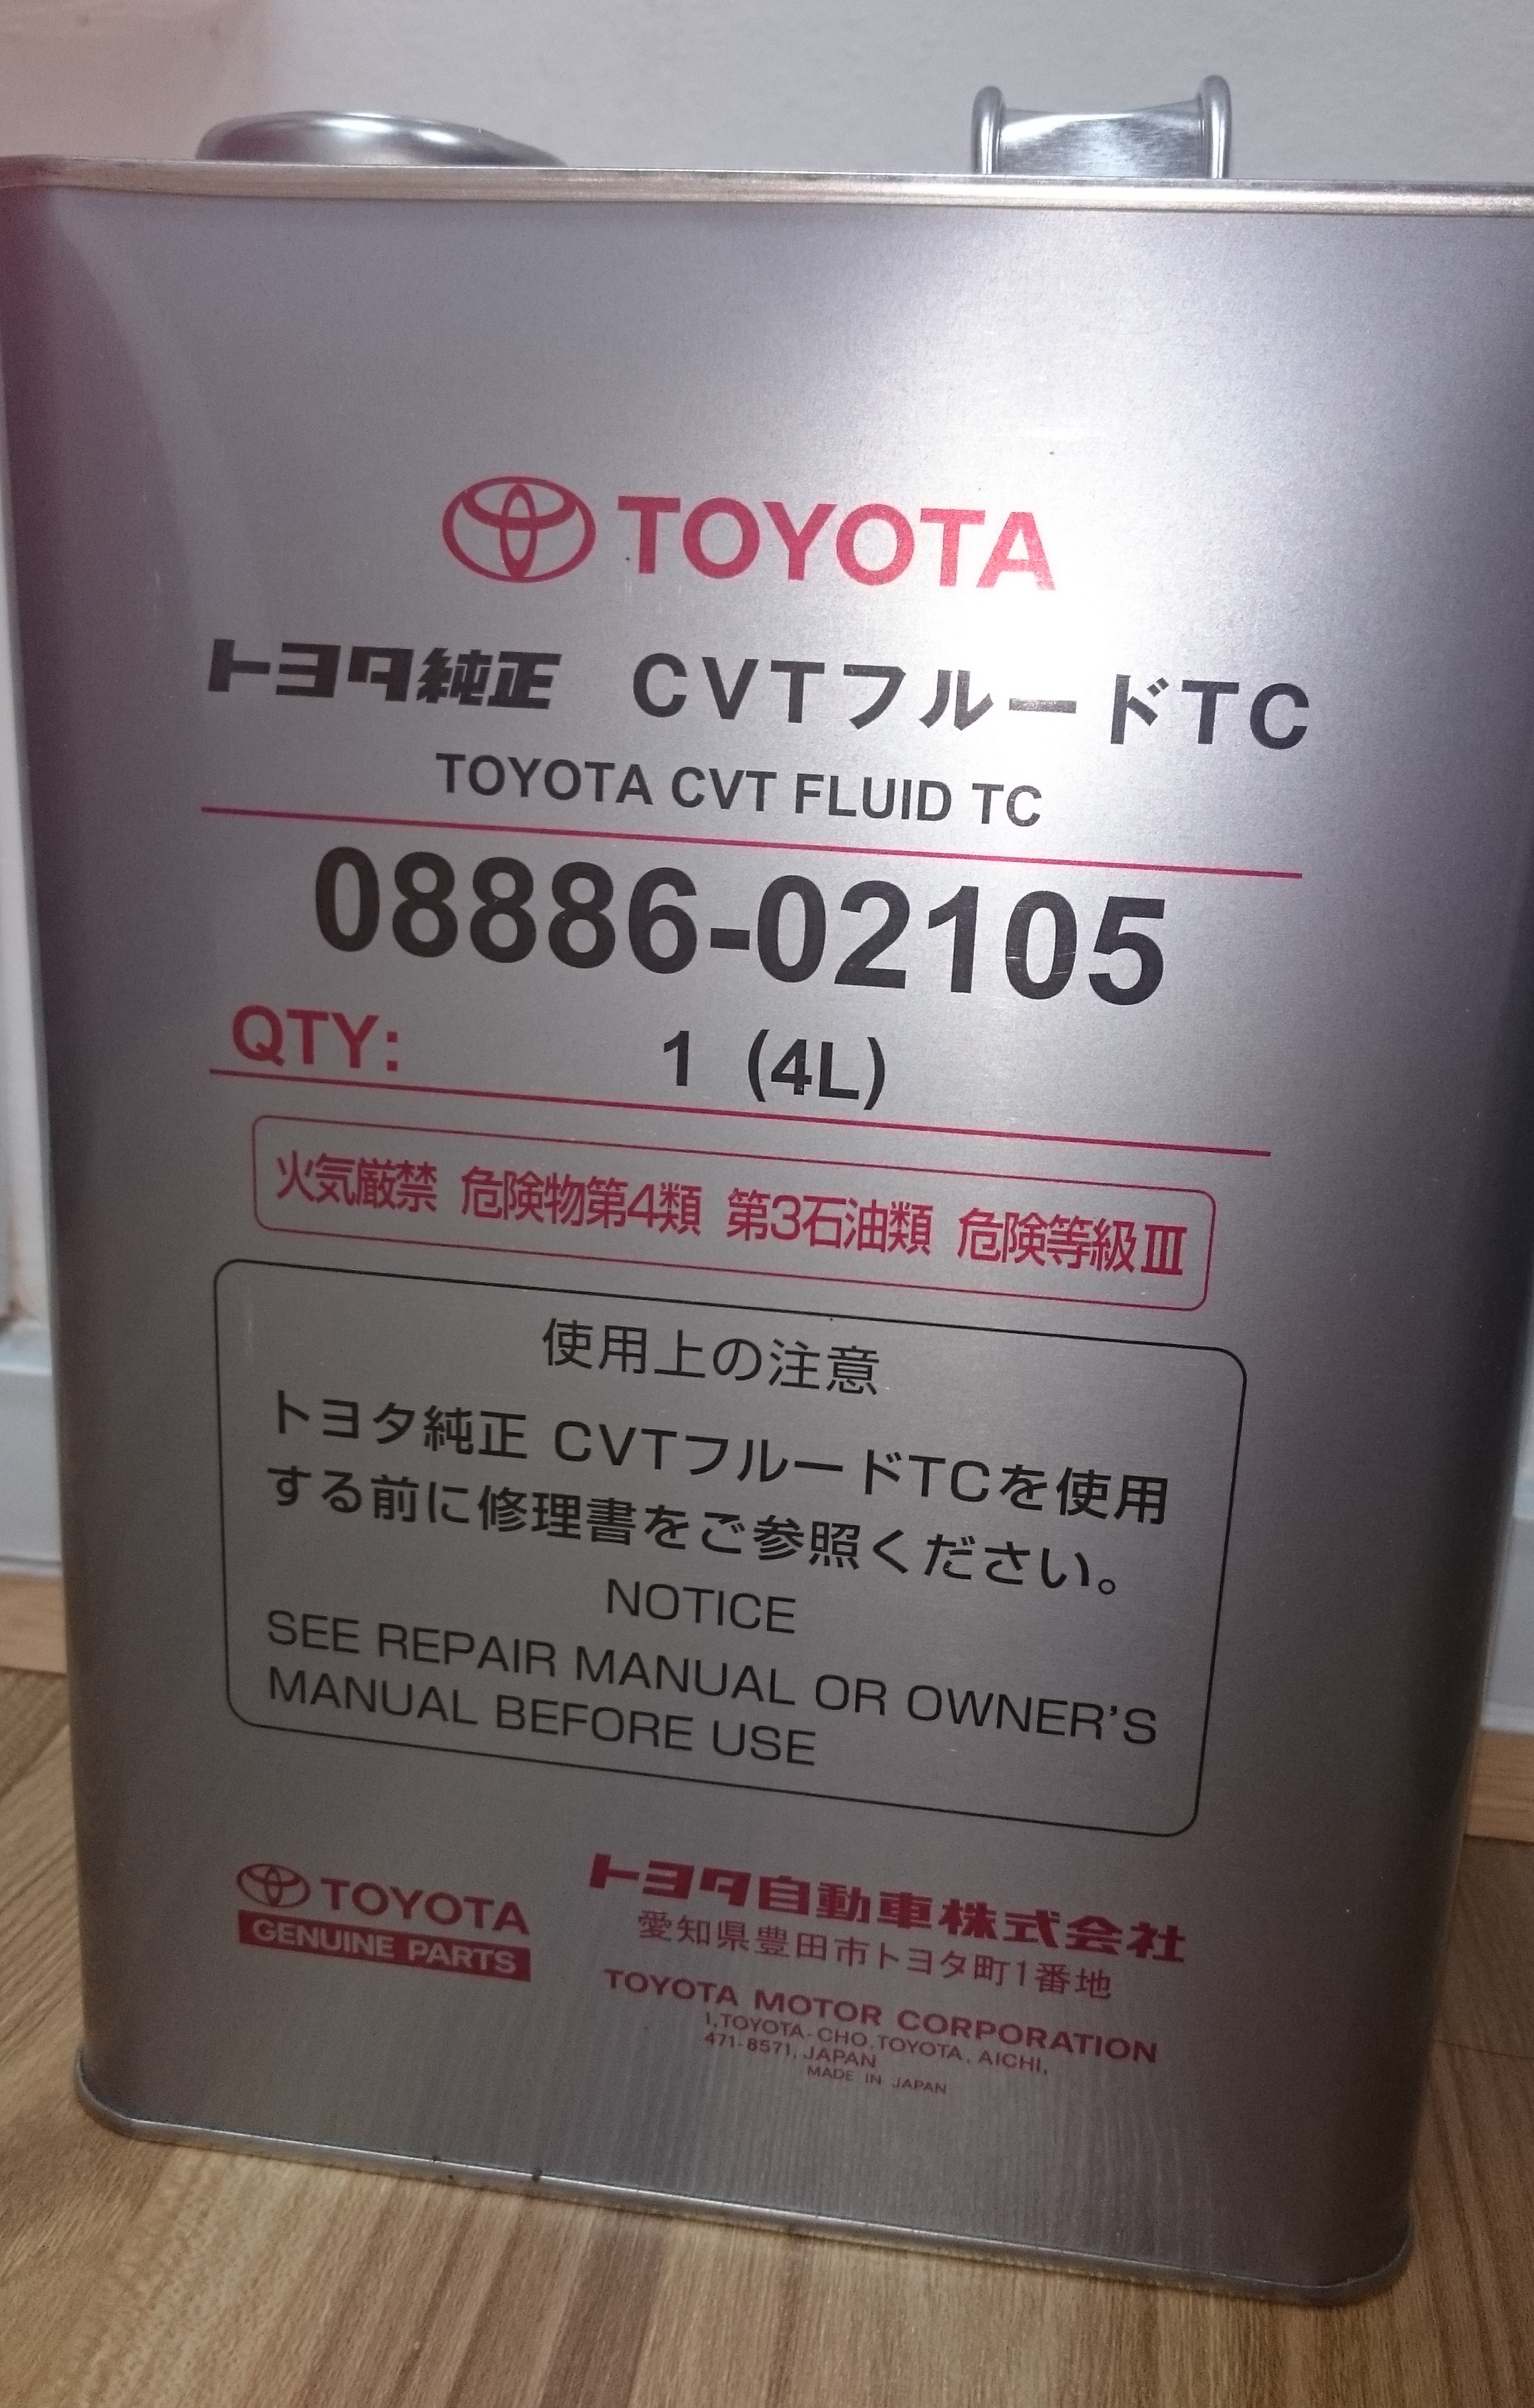 TOYOTA CVTF TC / CONTINUOUS VARIABLE TRANSMISSION FLUID ~ 4L PACK  [08886-02105 ], Car Accessories on Carousell